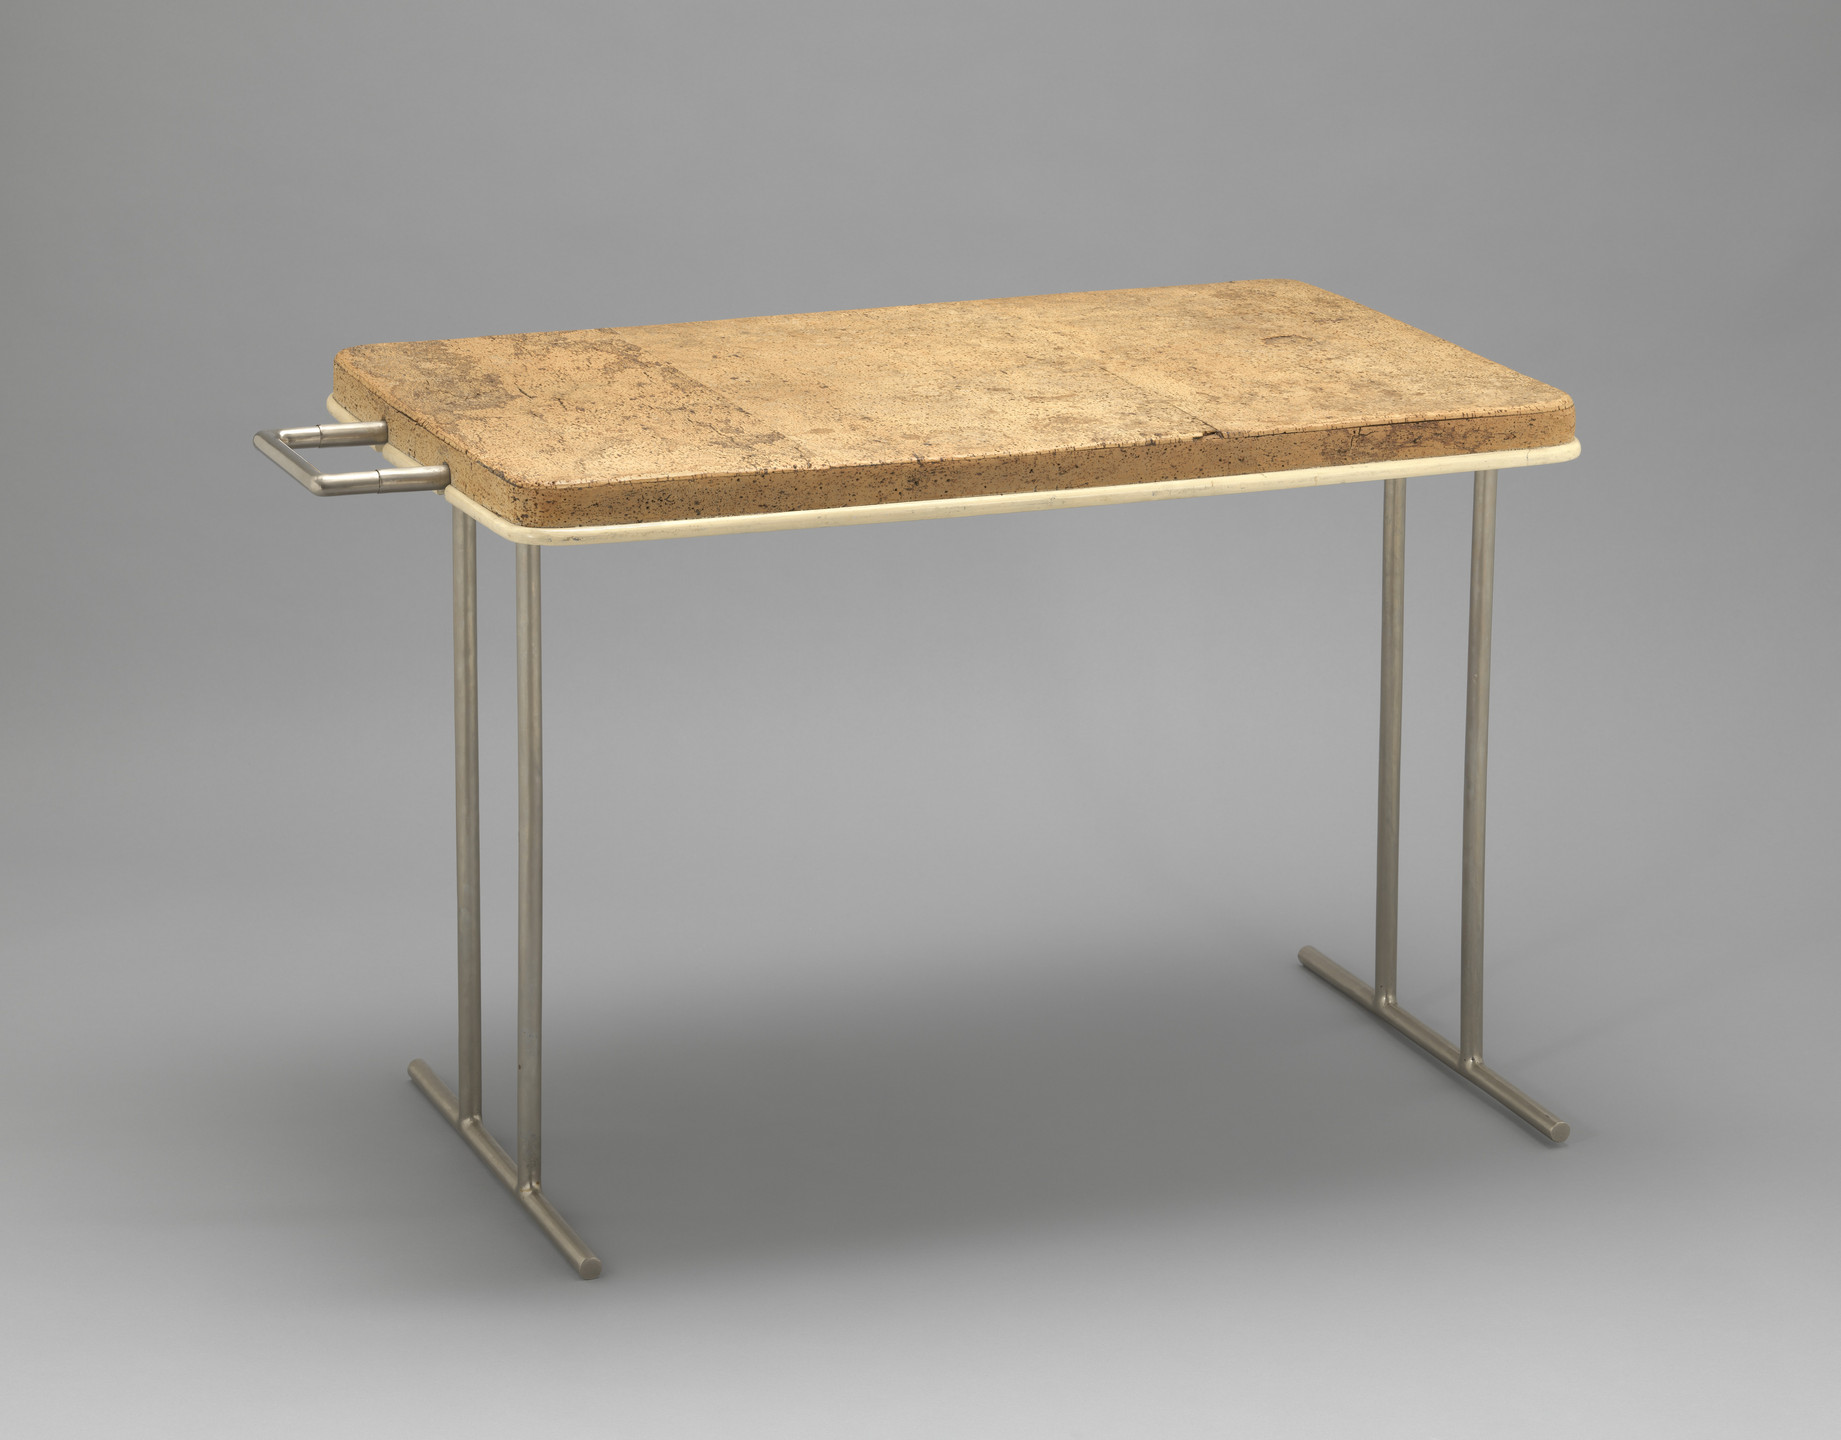 Eileen Gray. Extendable Table from E-1027. c.1930